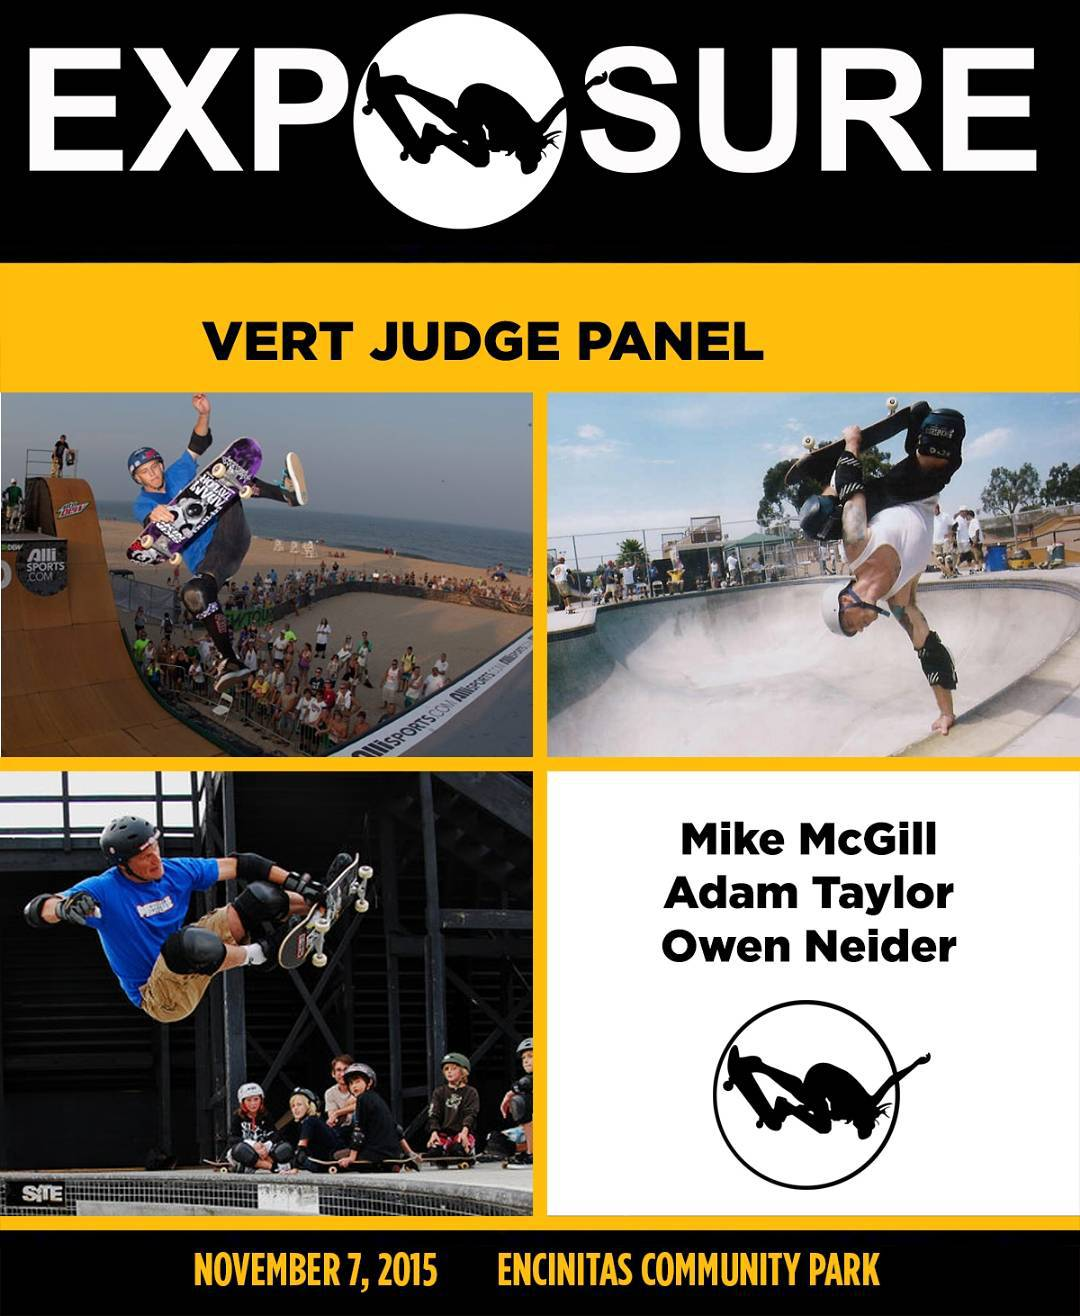 We are stoked to have @mikemcgill, @adamtaylorsk8 and #OwenNeider as the judges for #Exposure2015 Vert!